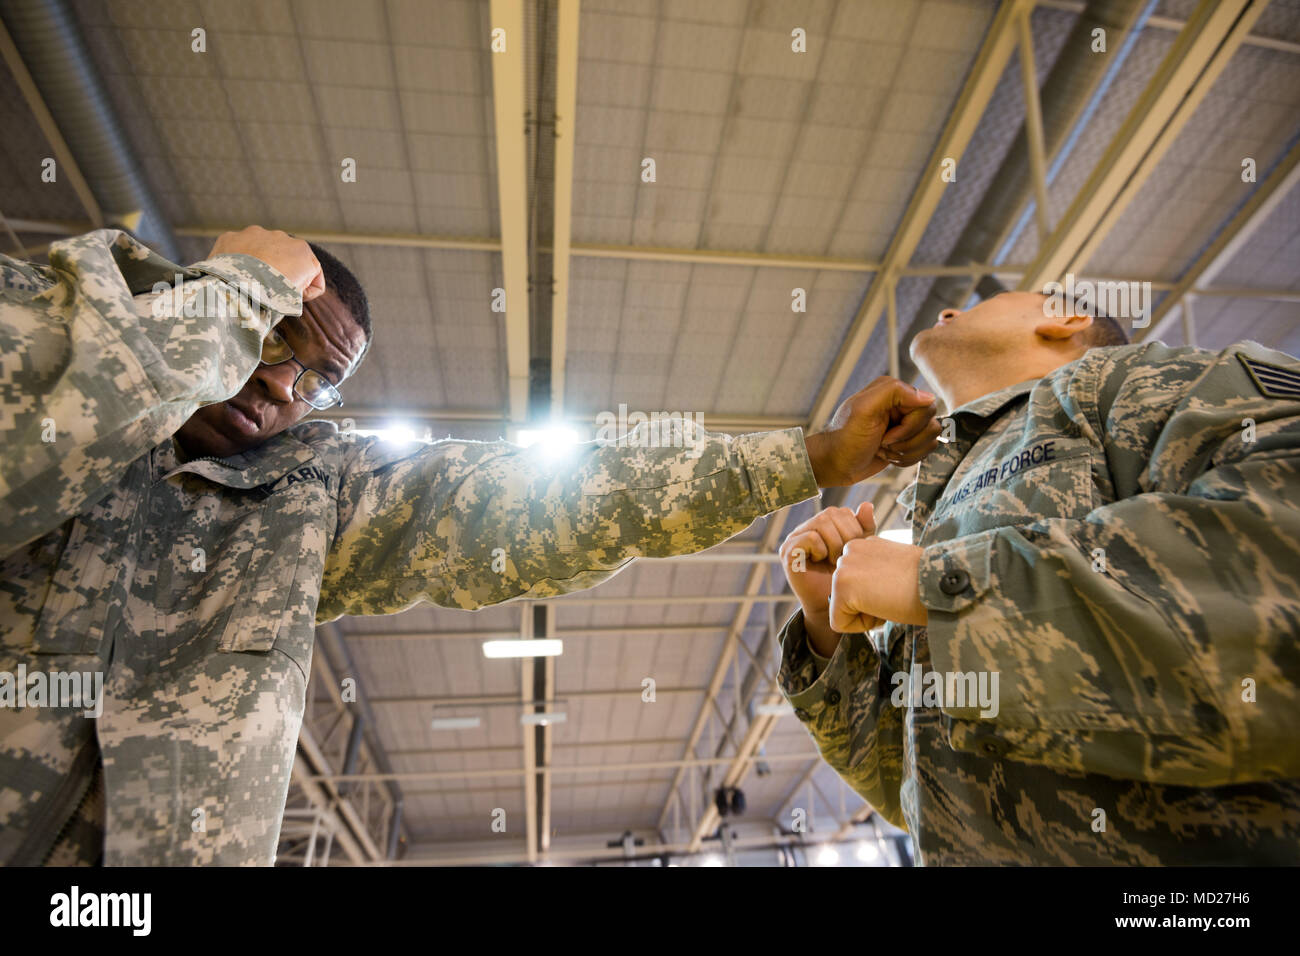 U.S. Army Sgt. Terrance Simmons, assigned to the Northern Law Center, 21st Theater Sustainment Command, demonstrates how to punch on U.S. Air Force Staff Sgt. Mario Huerta, assigned to the SACEUR Security Detachment, during the   Joint Tactical Combatives Course, on Chièvres Air Base, Belgium, March 9, 2018. (U.S. Army photo by Visual Information Specialist Pierre-Etienne Courtejoie) - Stock Image